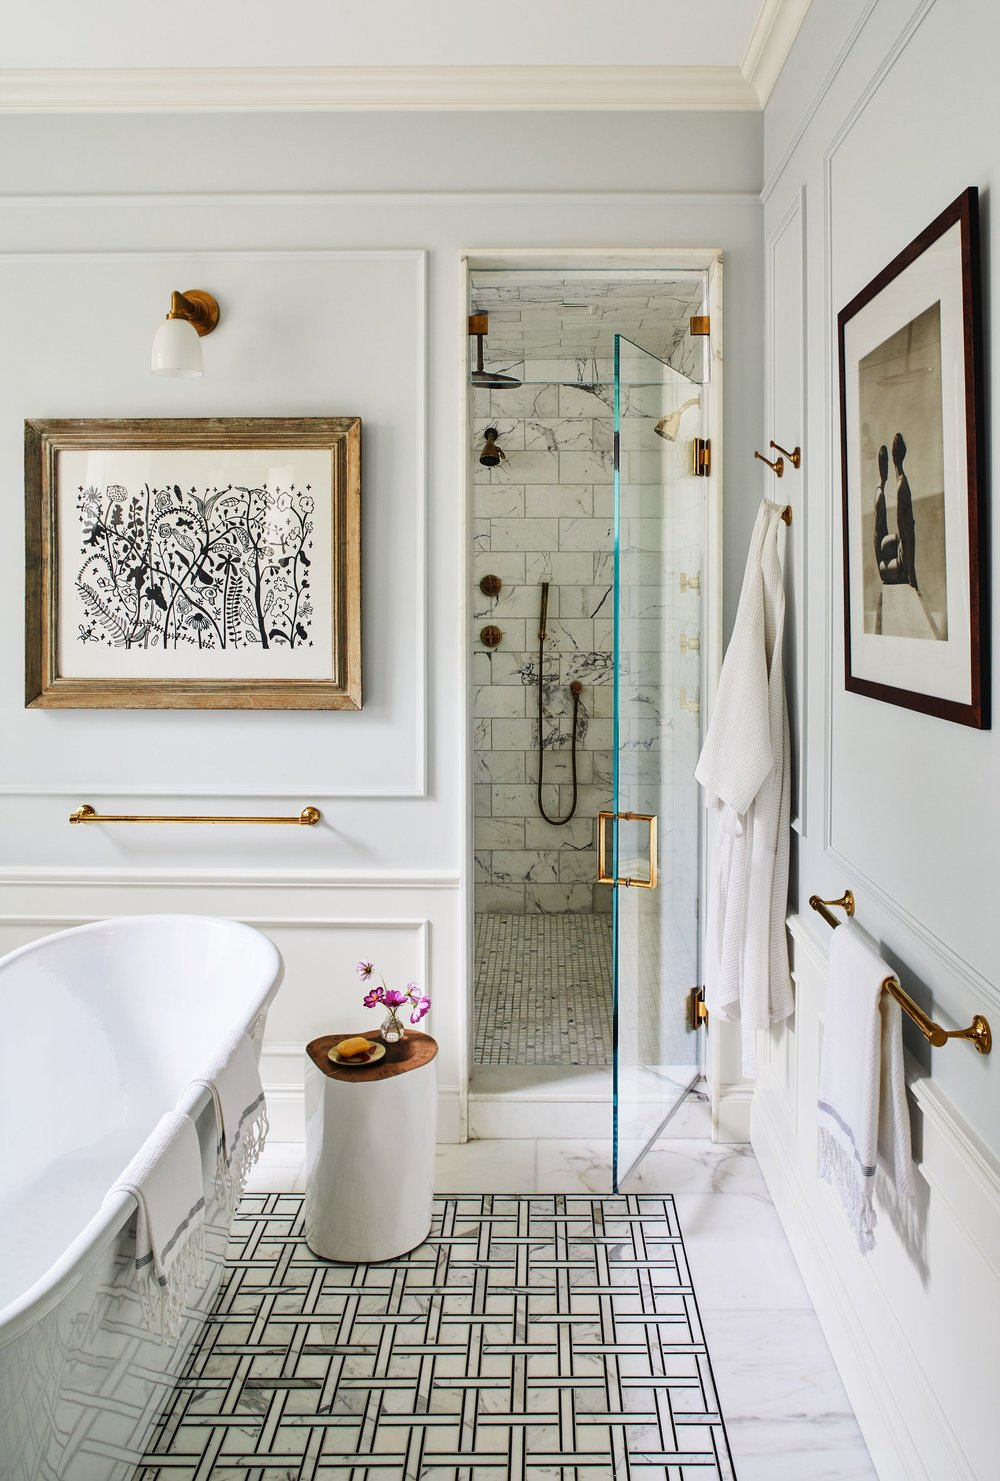 Design by  Carrier and Company  for Sylvana Durrett via  Architectural Digest